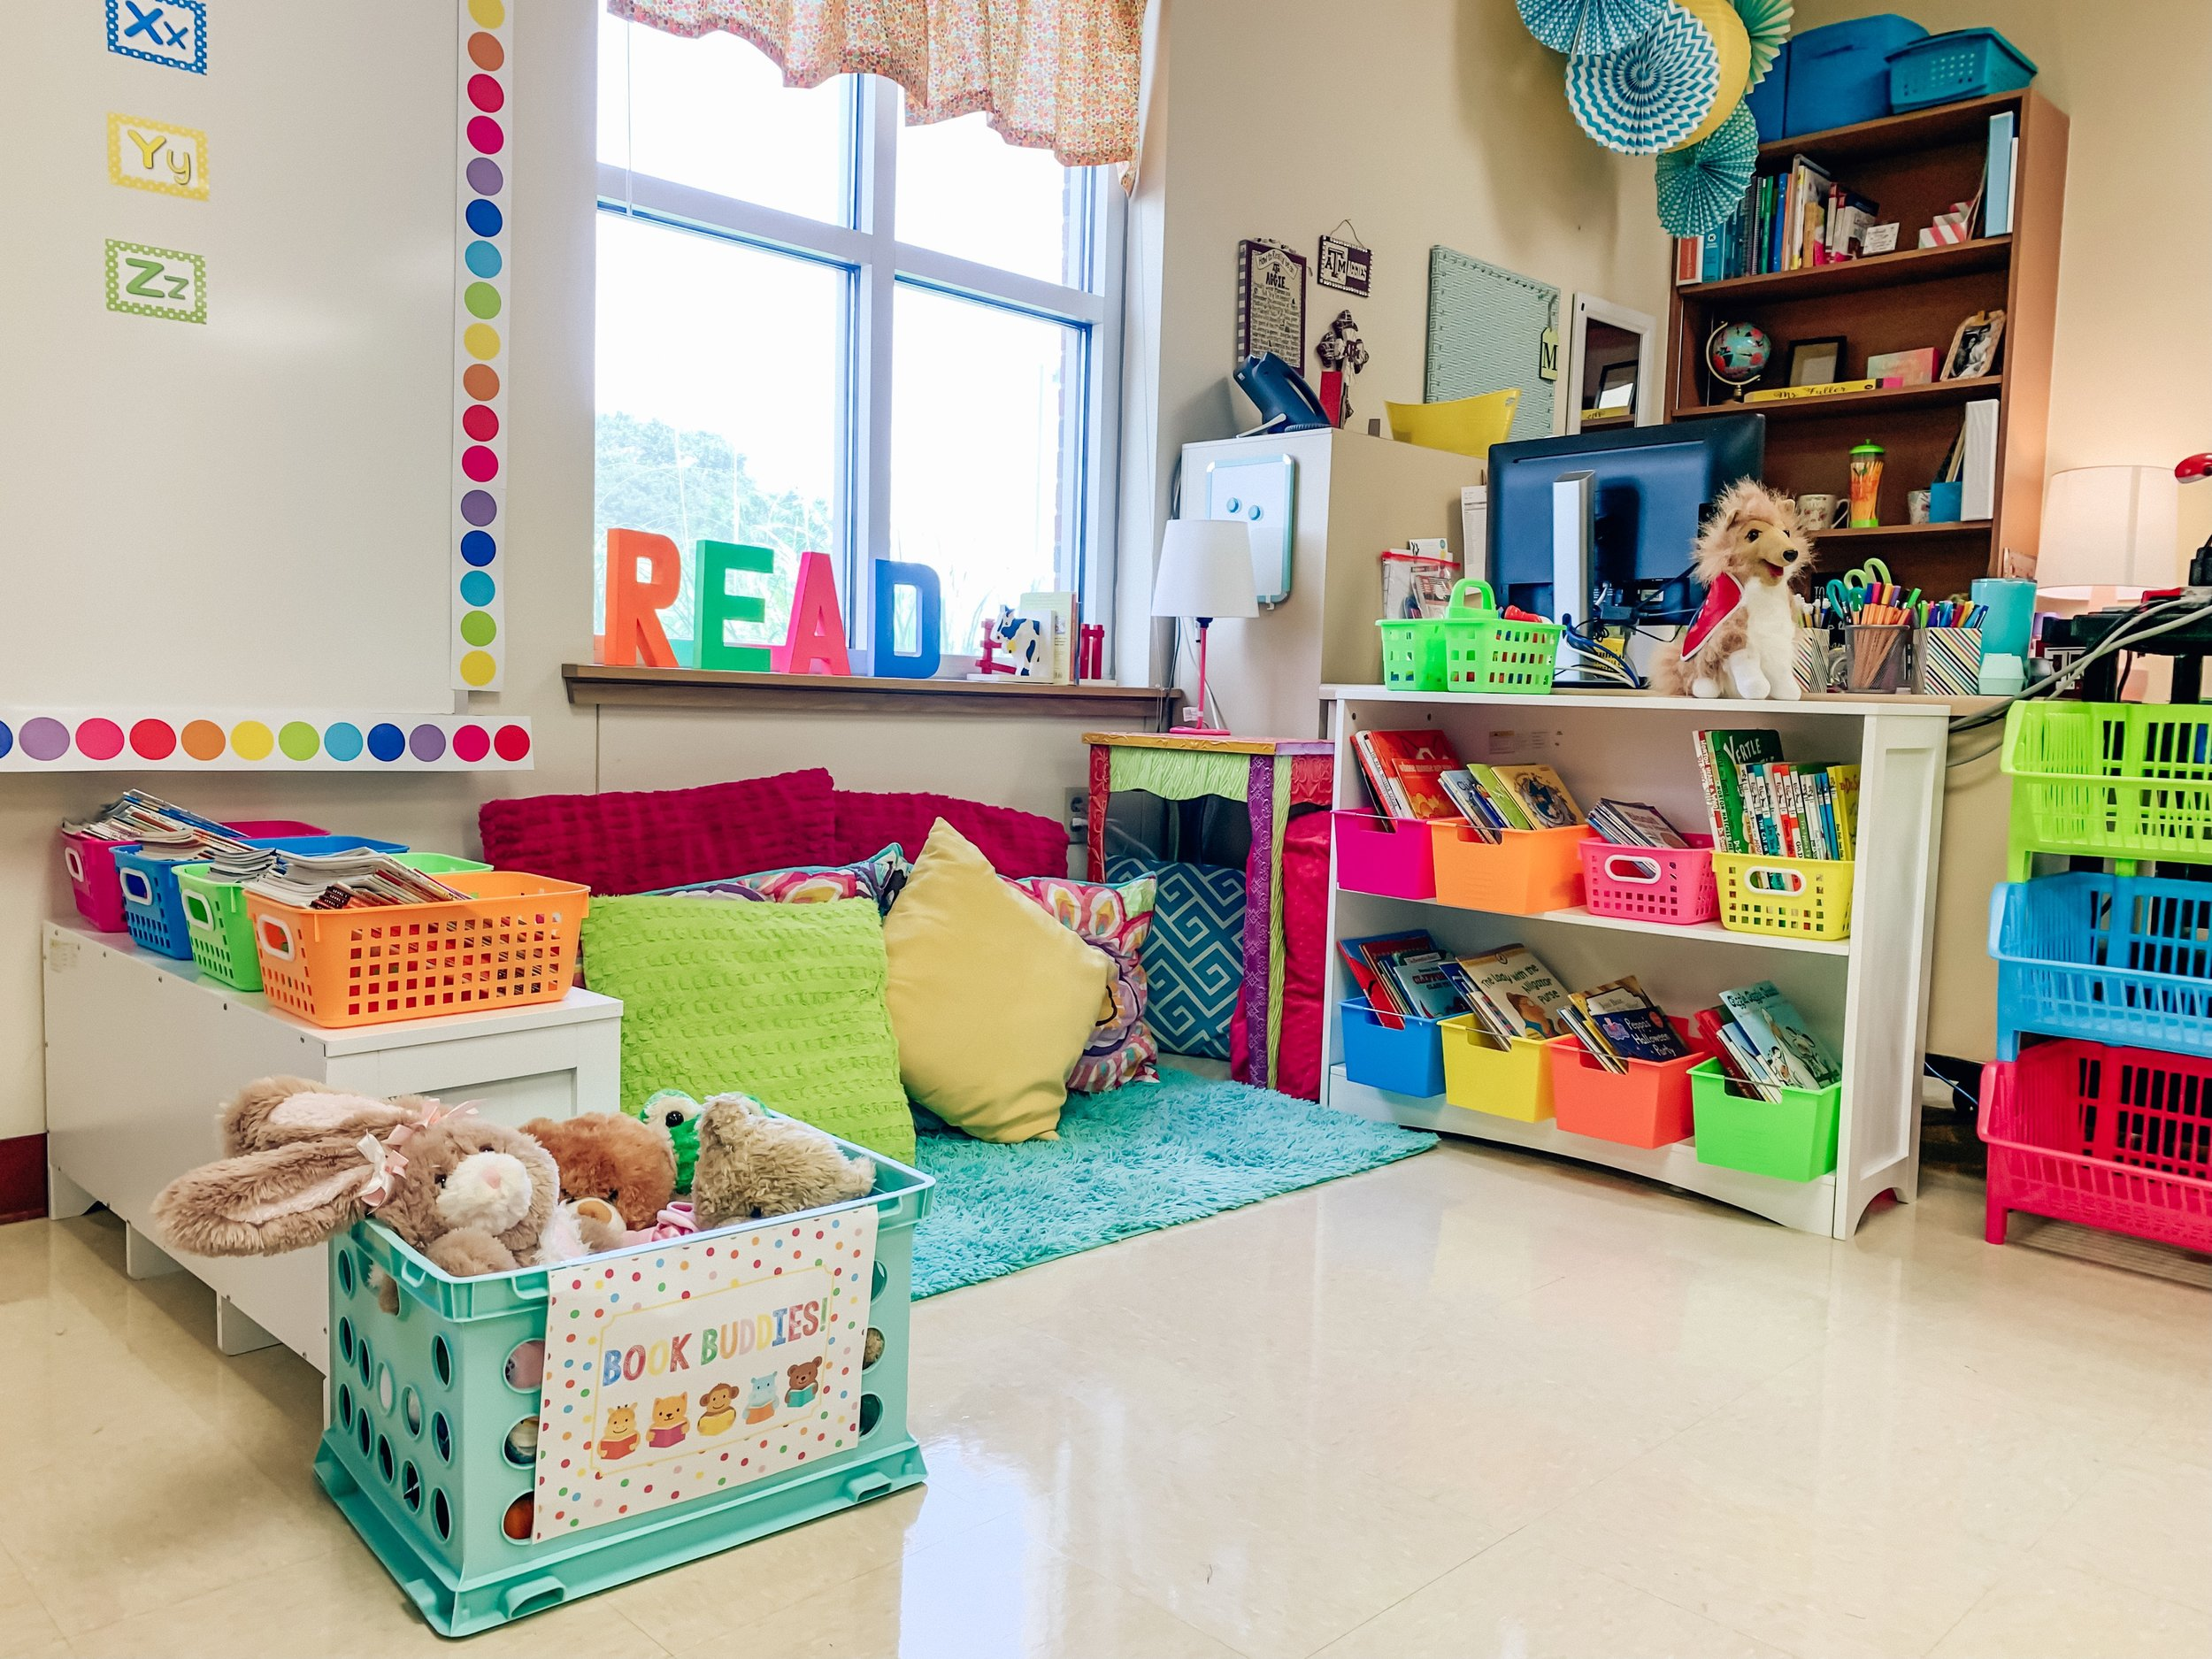 Our reading corner, complete with lots of different books, comfy pillows, a little lamp, book buddy stuffed animals, and of course our class mascot, Miss Rev.